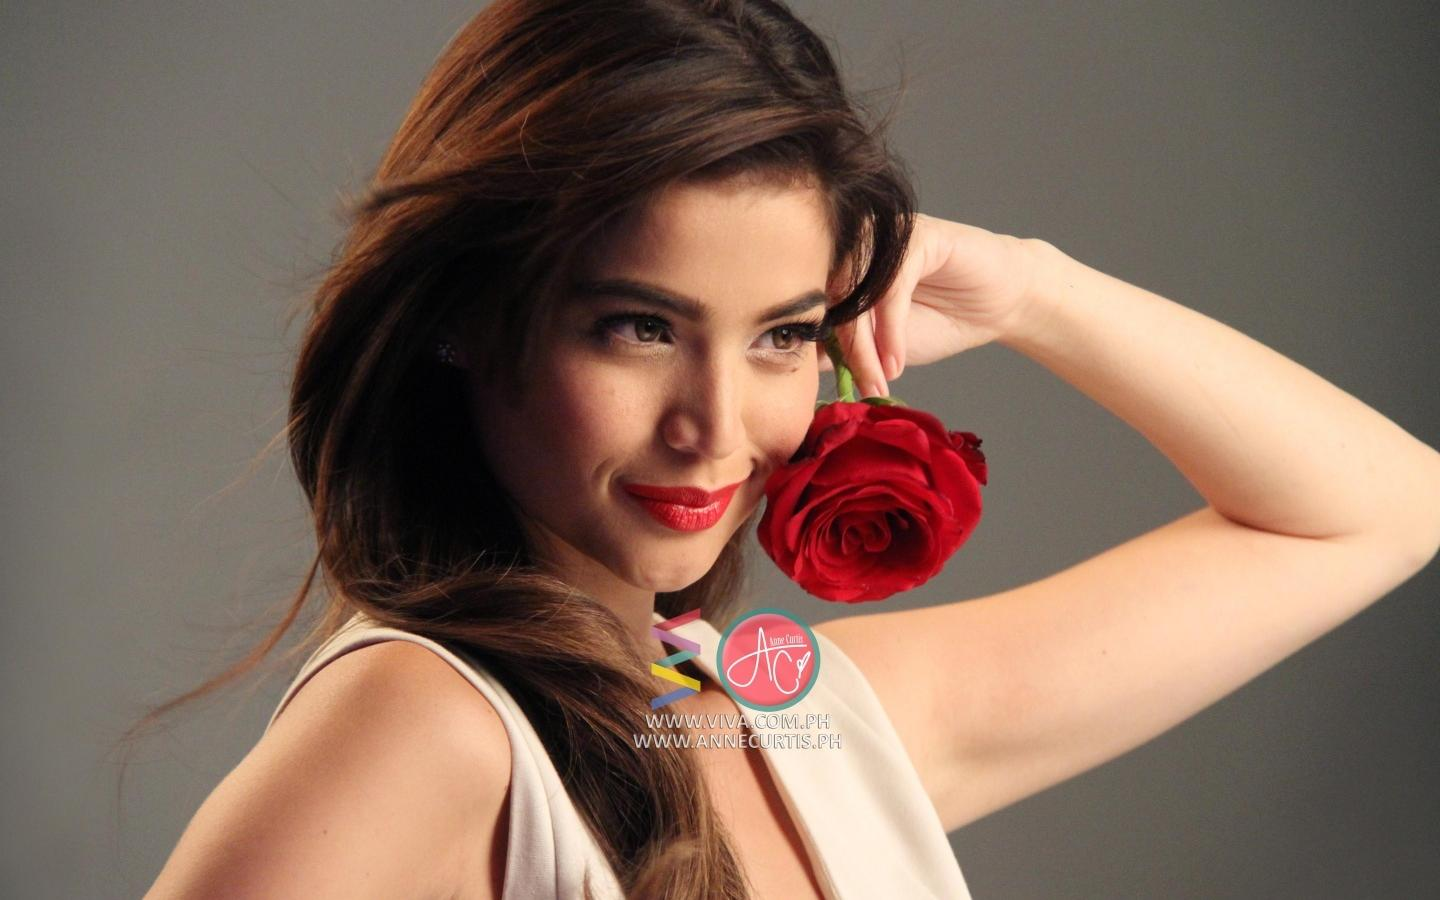 1440x900 - Anne Curtis Wallpapers 13